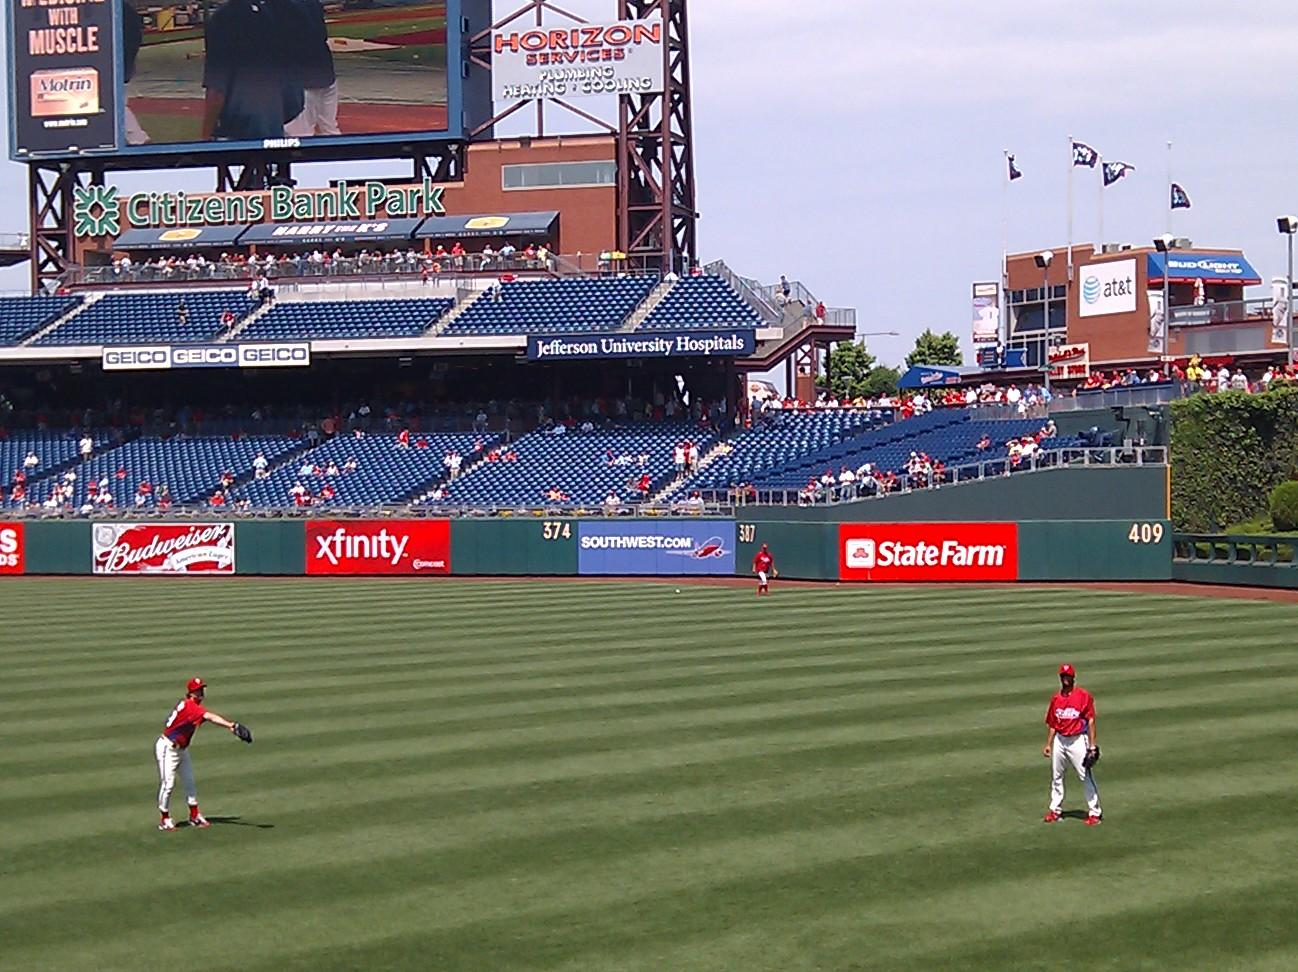 Citizens Bank Park Section 107 Row 13 Seat 4